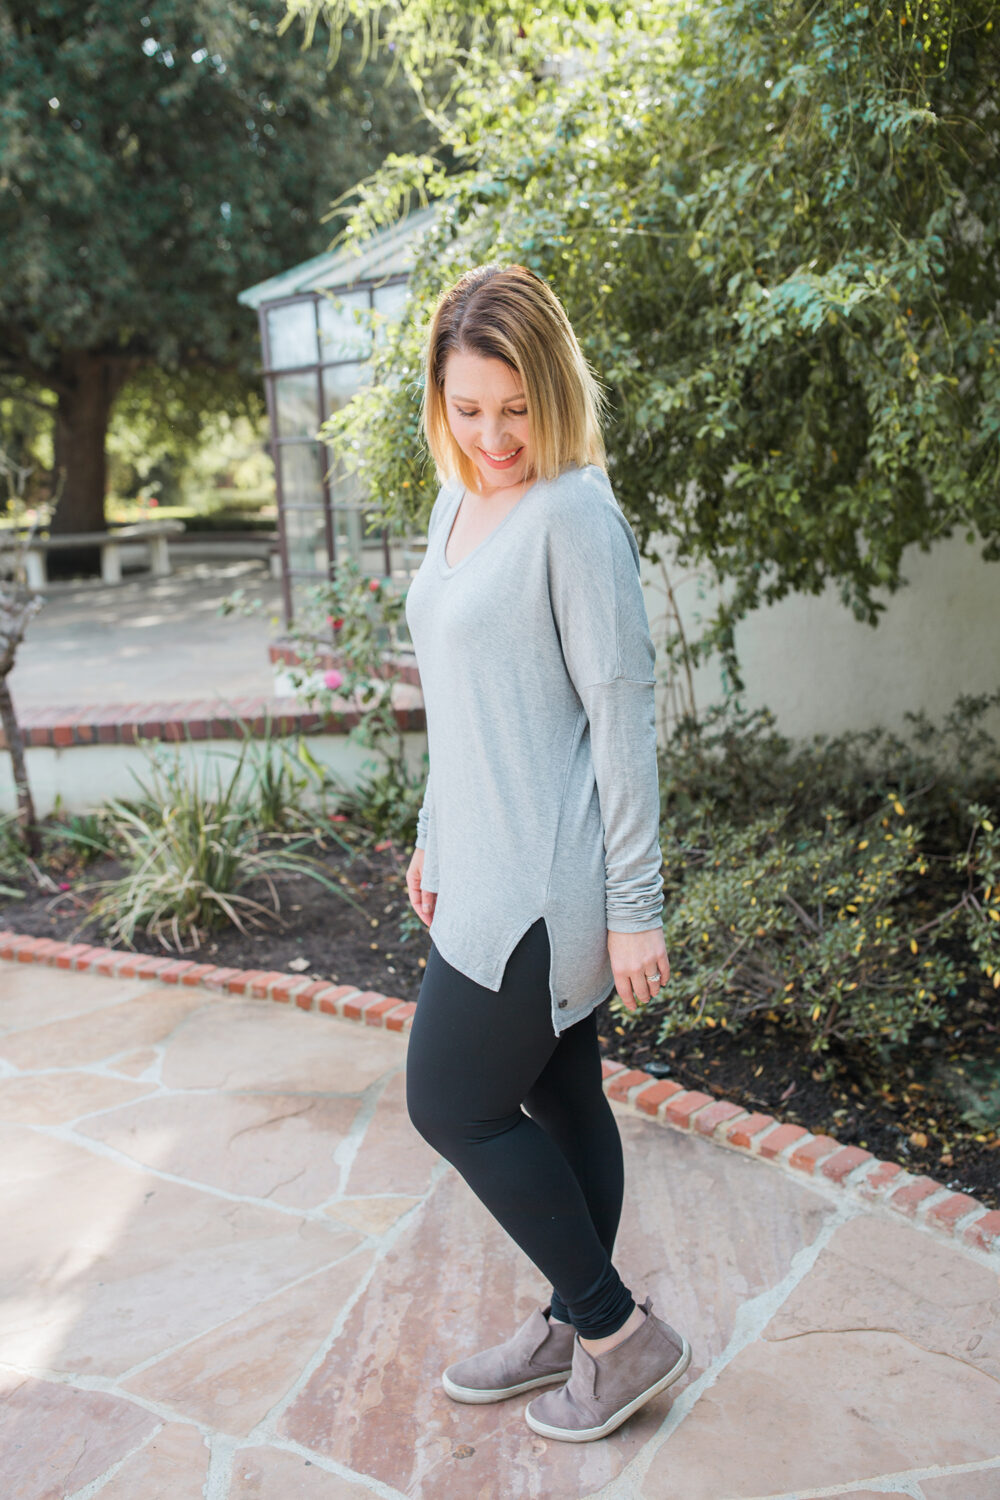 Obsessed with black leggings? This pair from Zella is amazing and perfect for everyday wear!